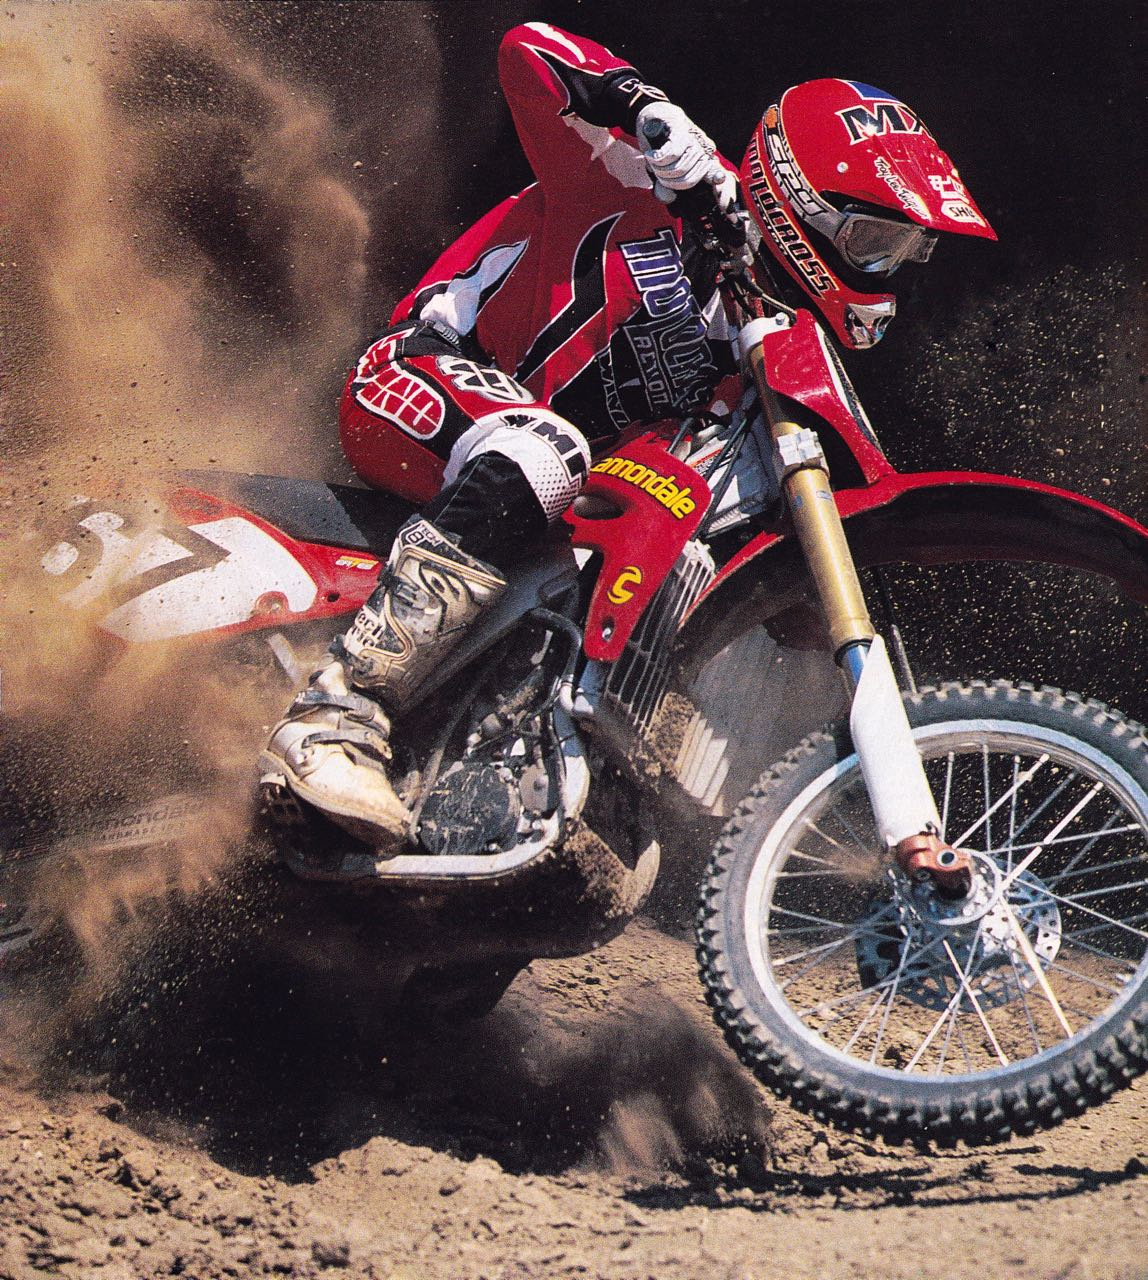 839a23d372c 2001 Cannondale MX400 Test From Motocross Action – The Motocross Vault